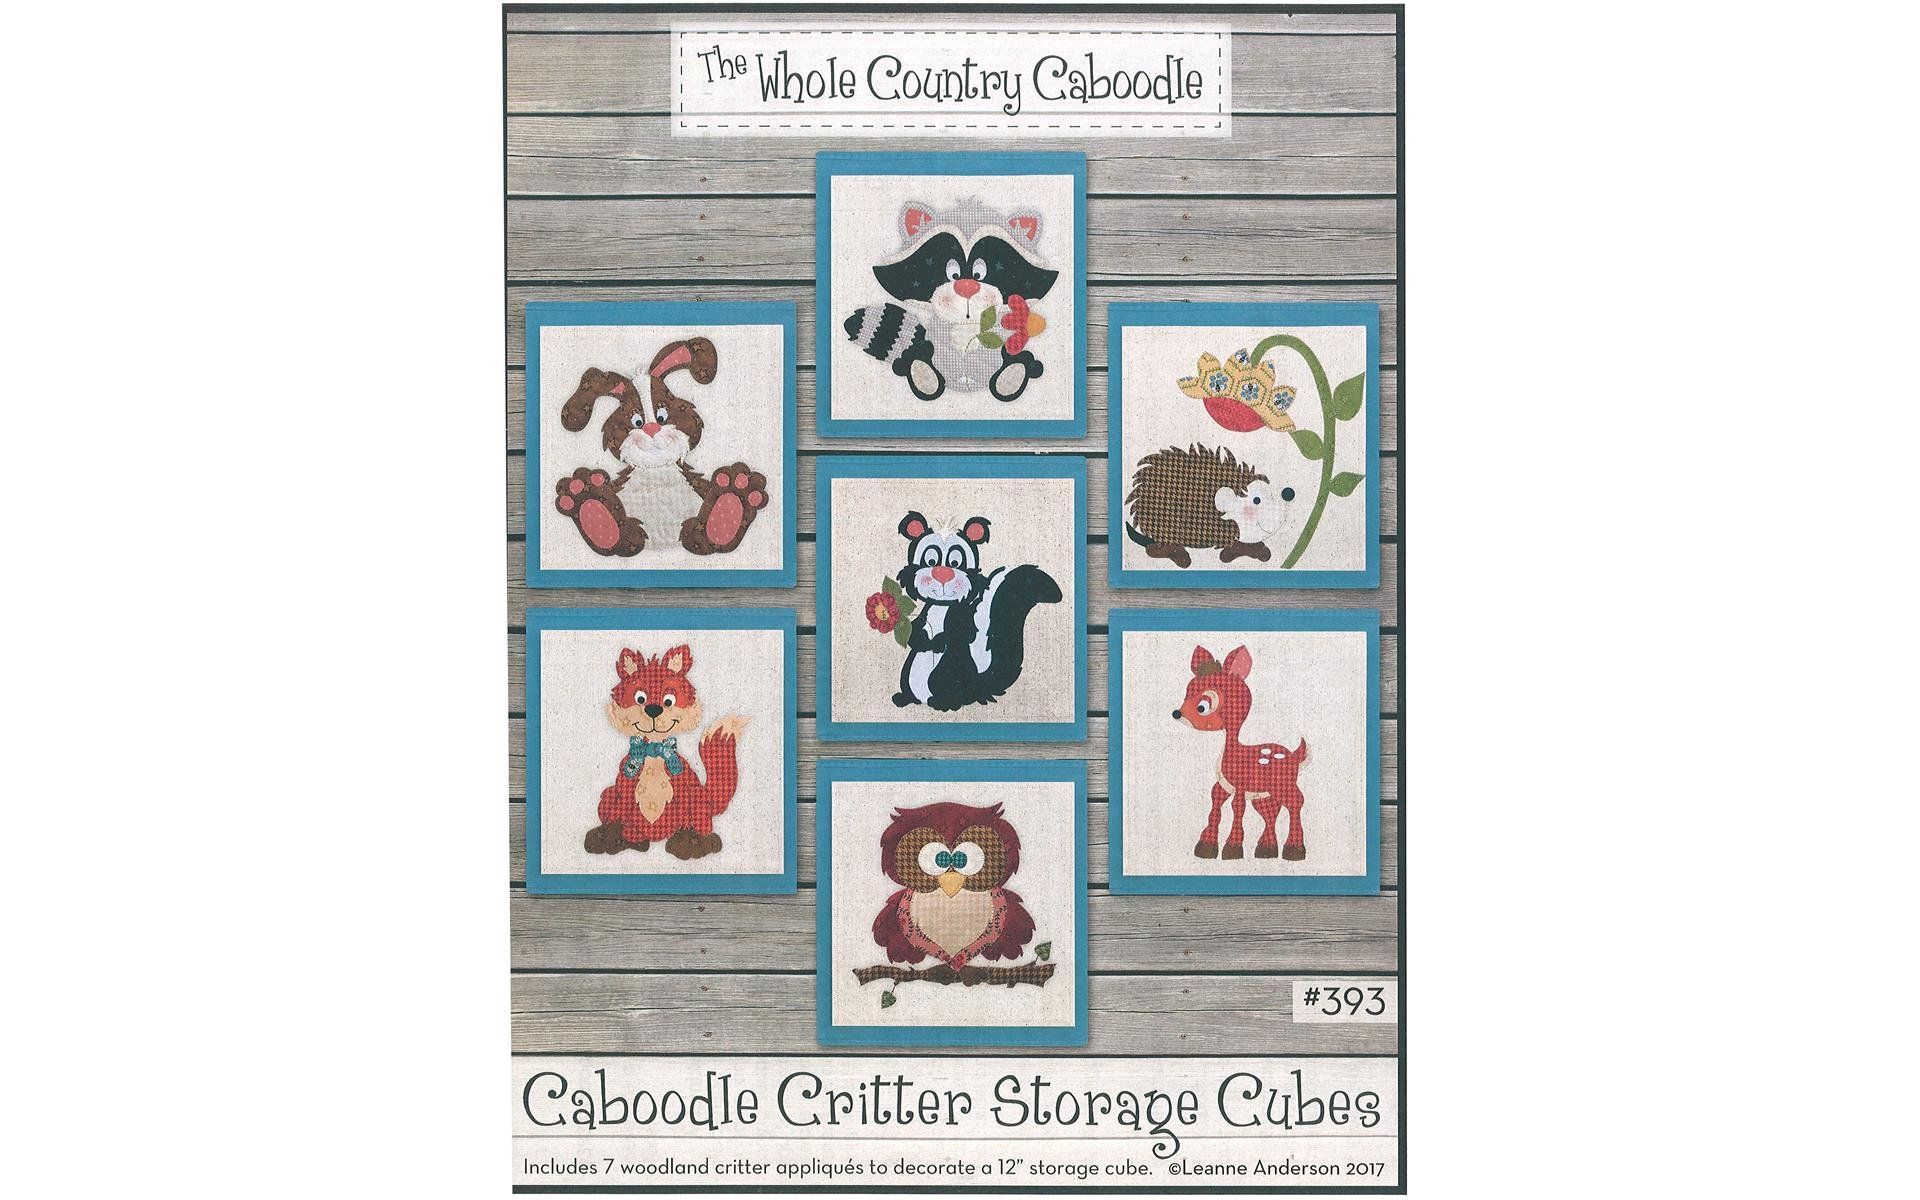 Caboodle Critter Storage Cubes